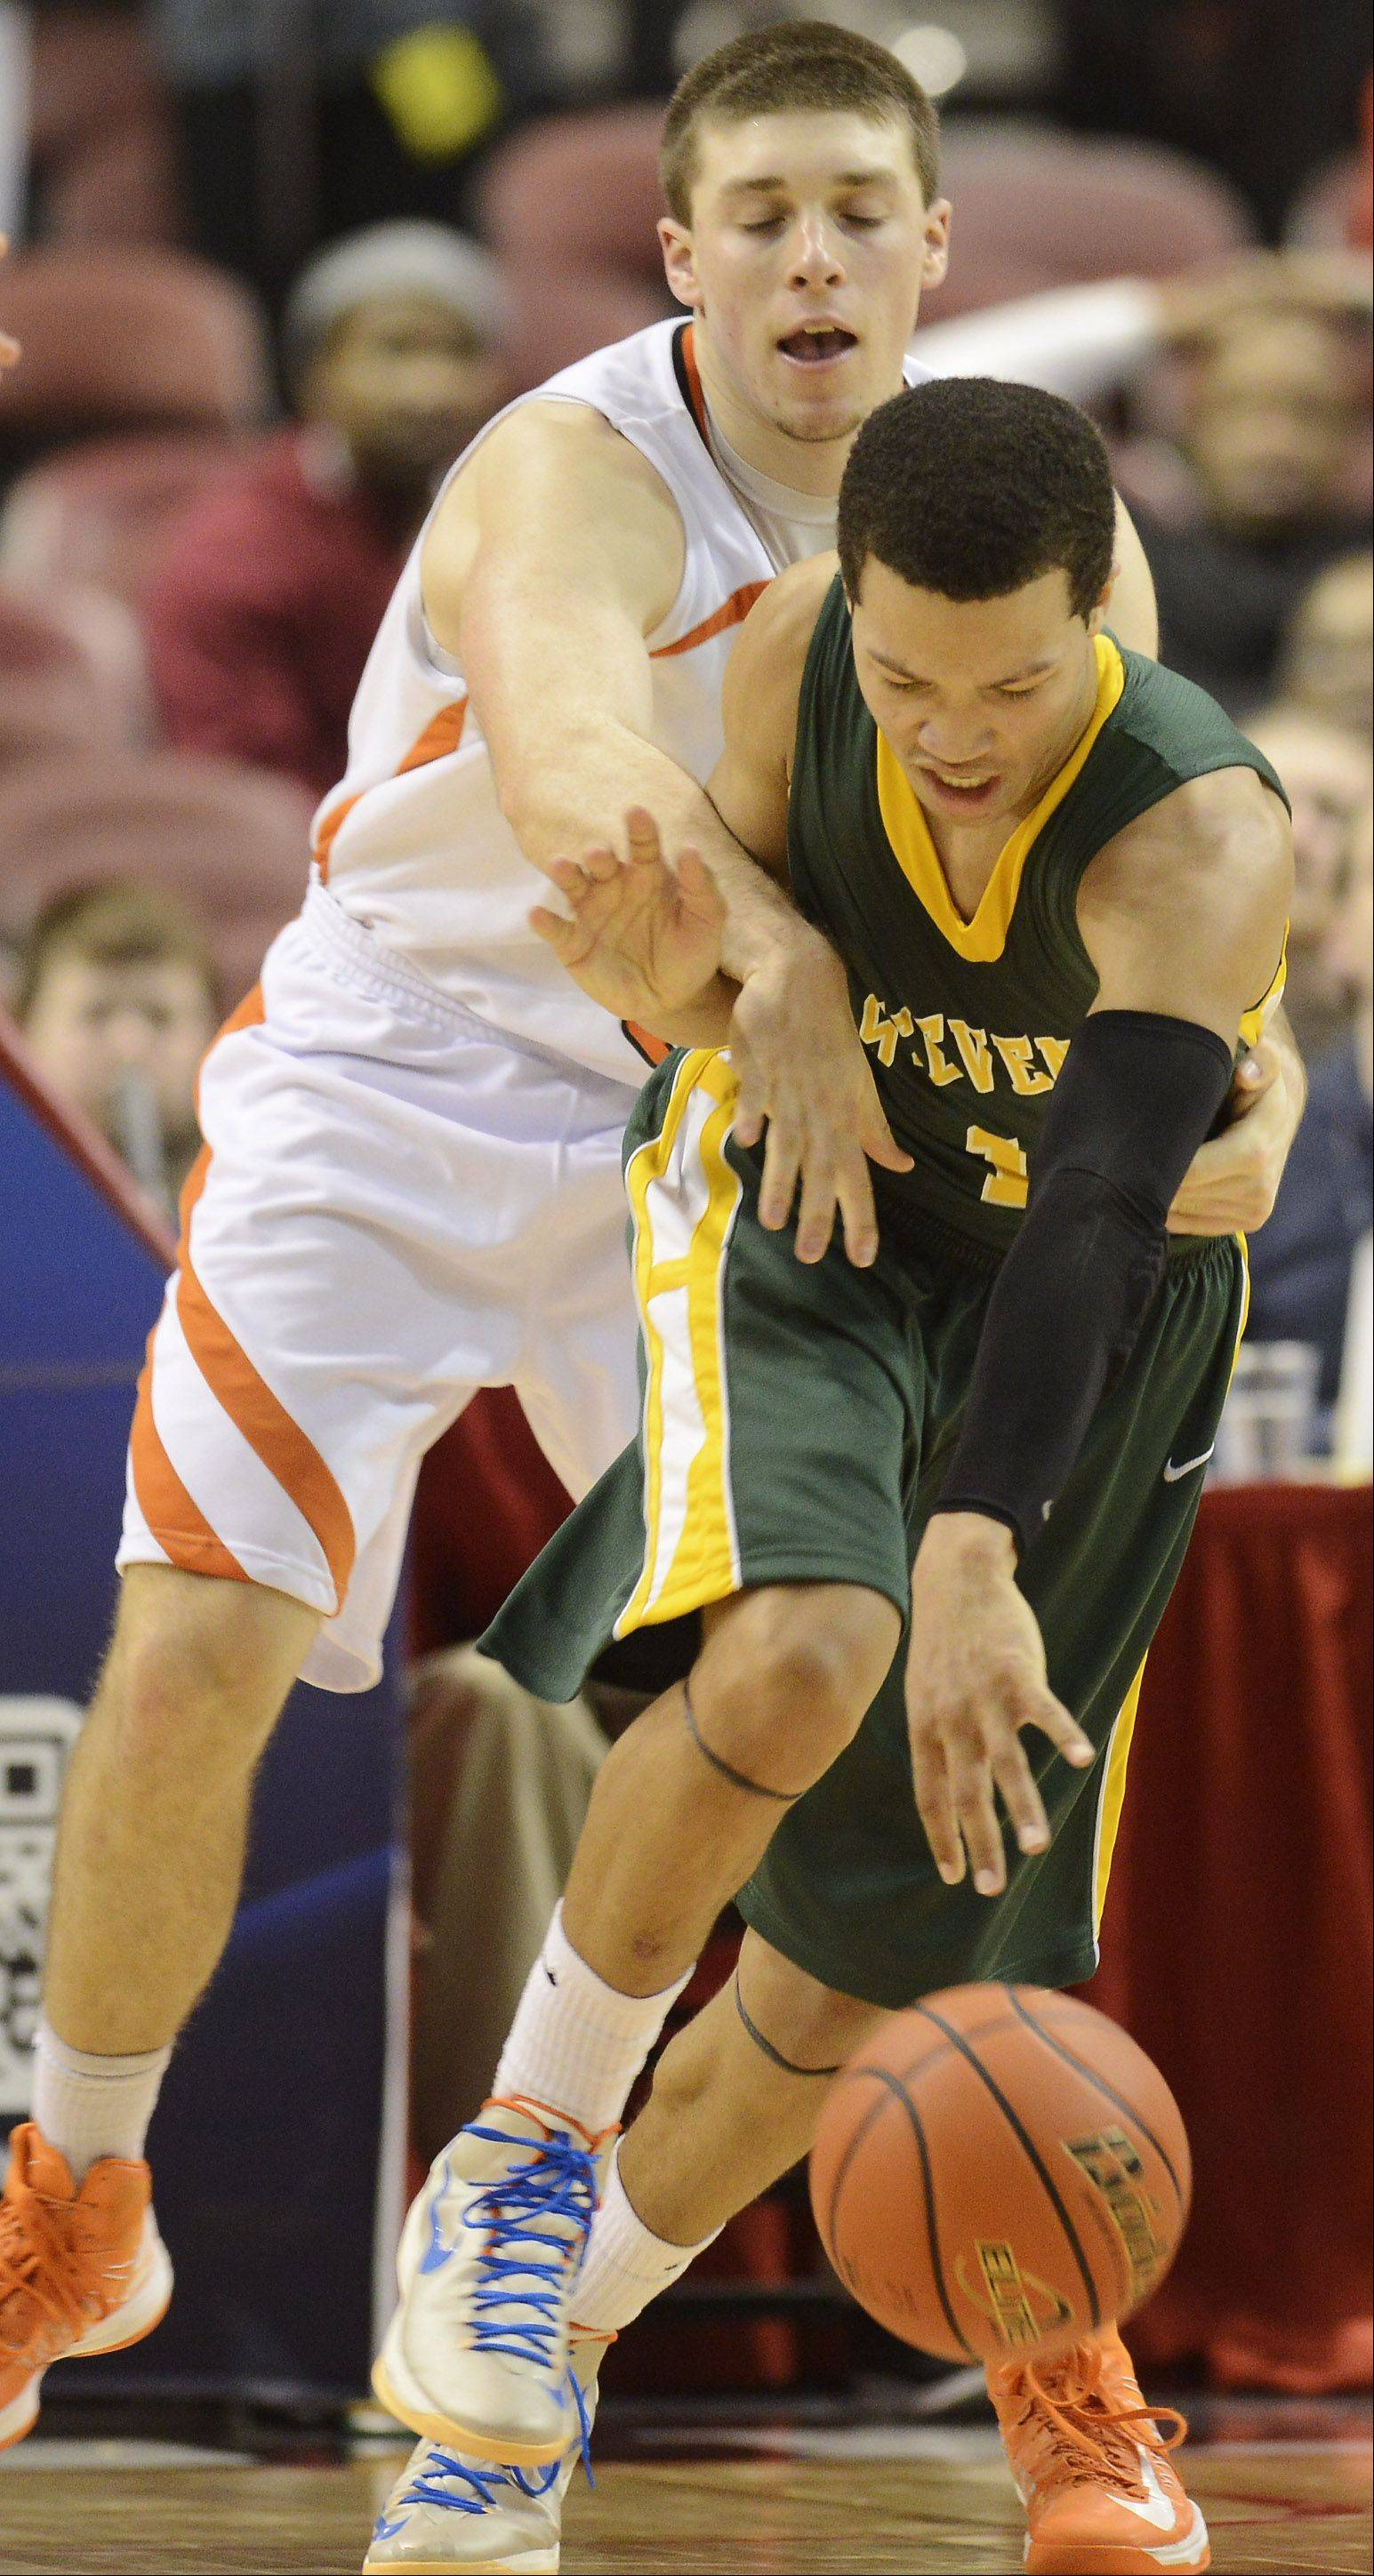 Edwardsville's Drew Curtis, left, fouls Stevenson's Jalen Brunson during the Class 4A boys basketball state semifinals Friday at Carver Arena in Peoria.